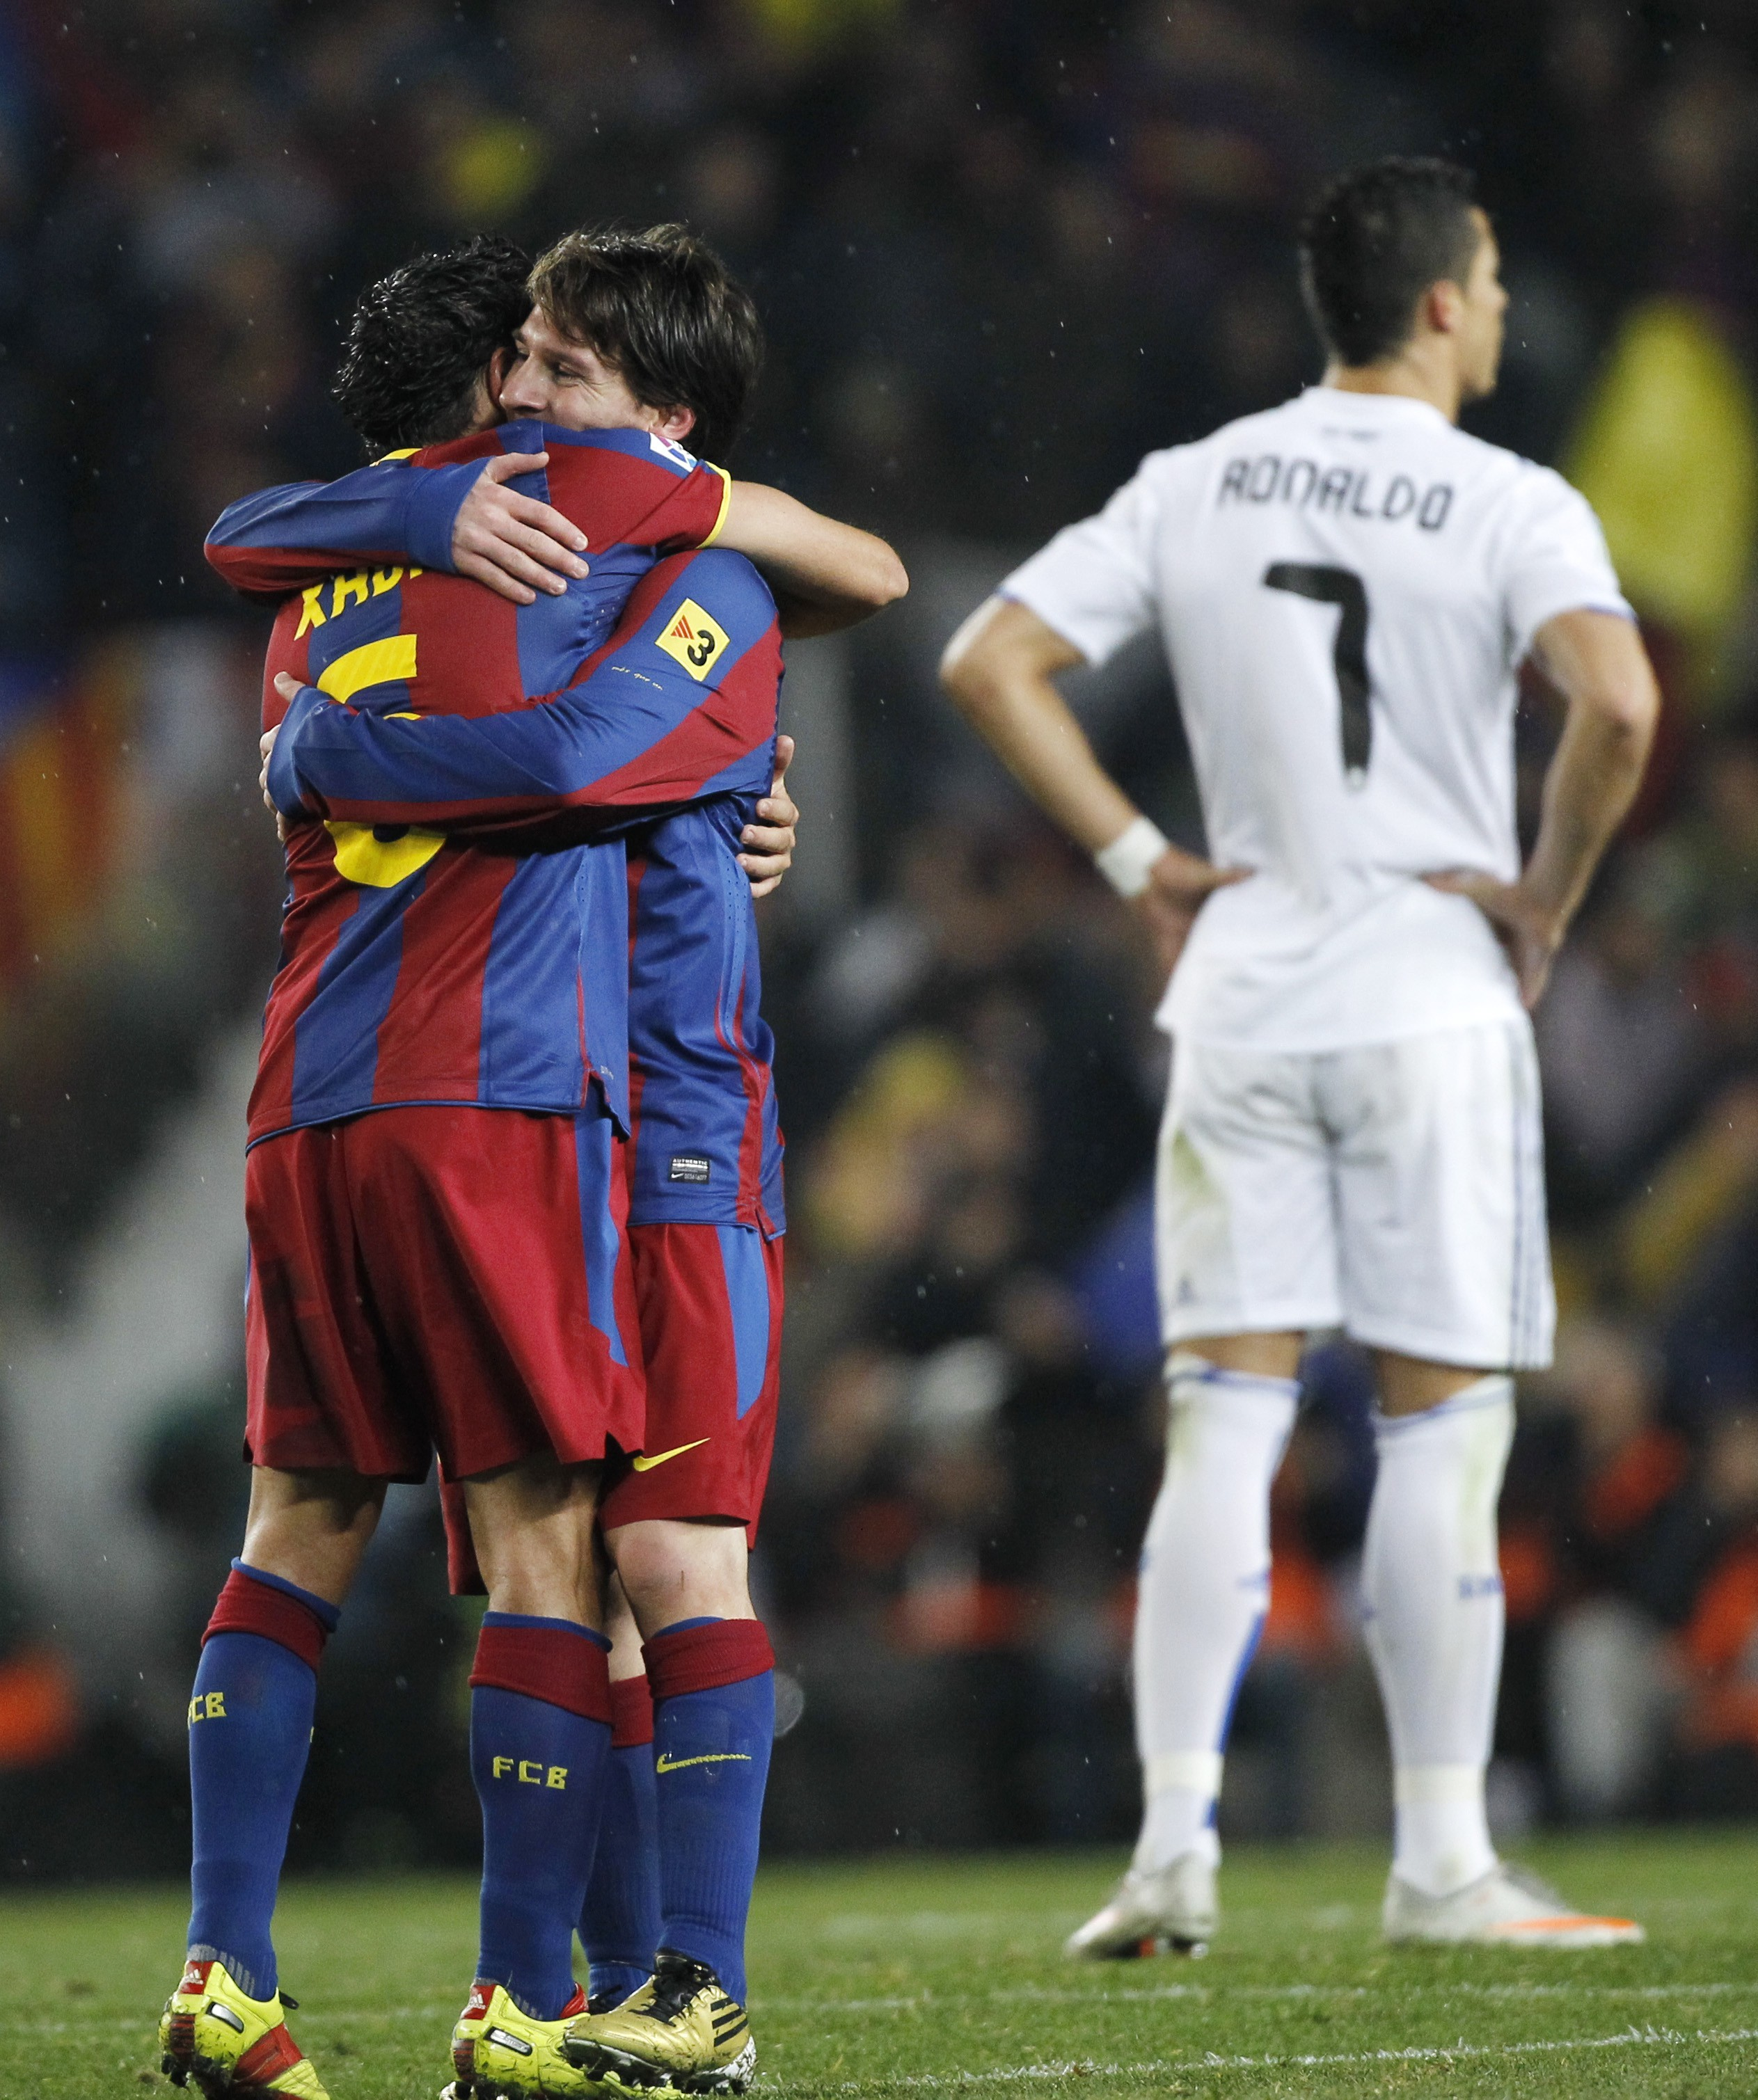 Real Madrid lionel messi cristiano ronaldo HD Wallpaper